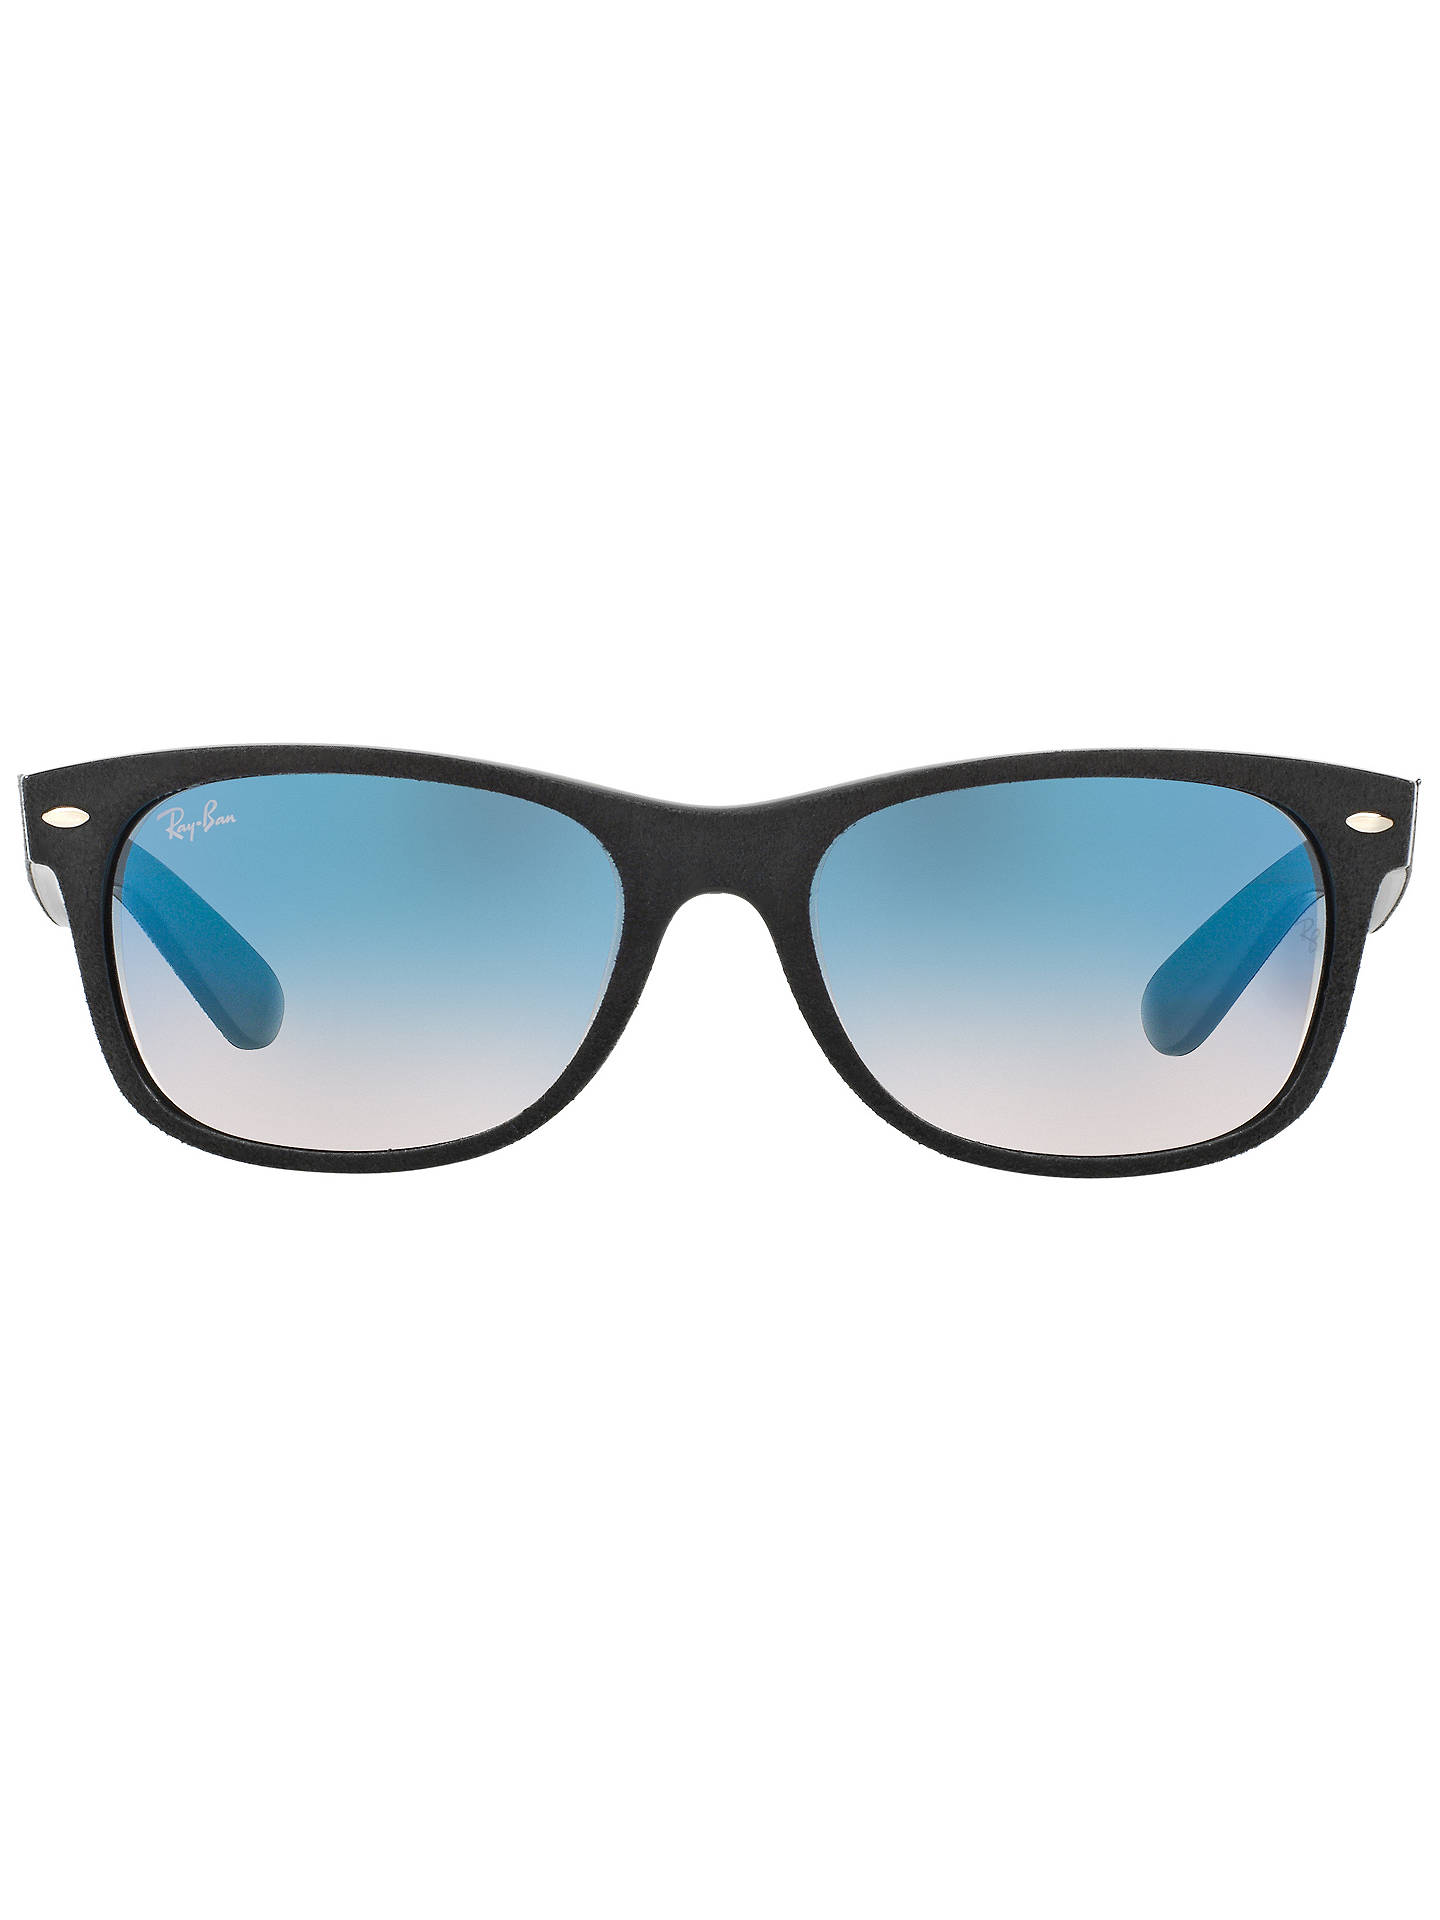 df239230f6 ... Buy Ray-Ban RB2132 New Wayfarer Sunglasses